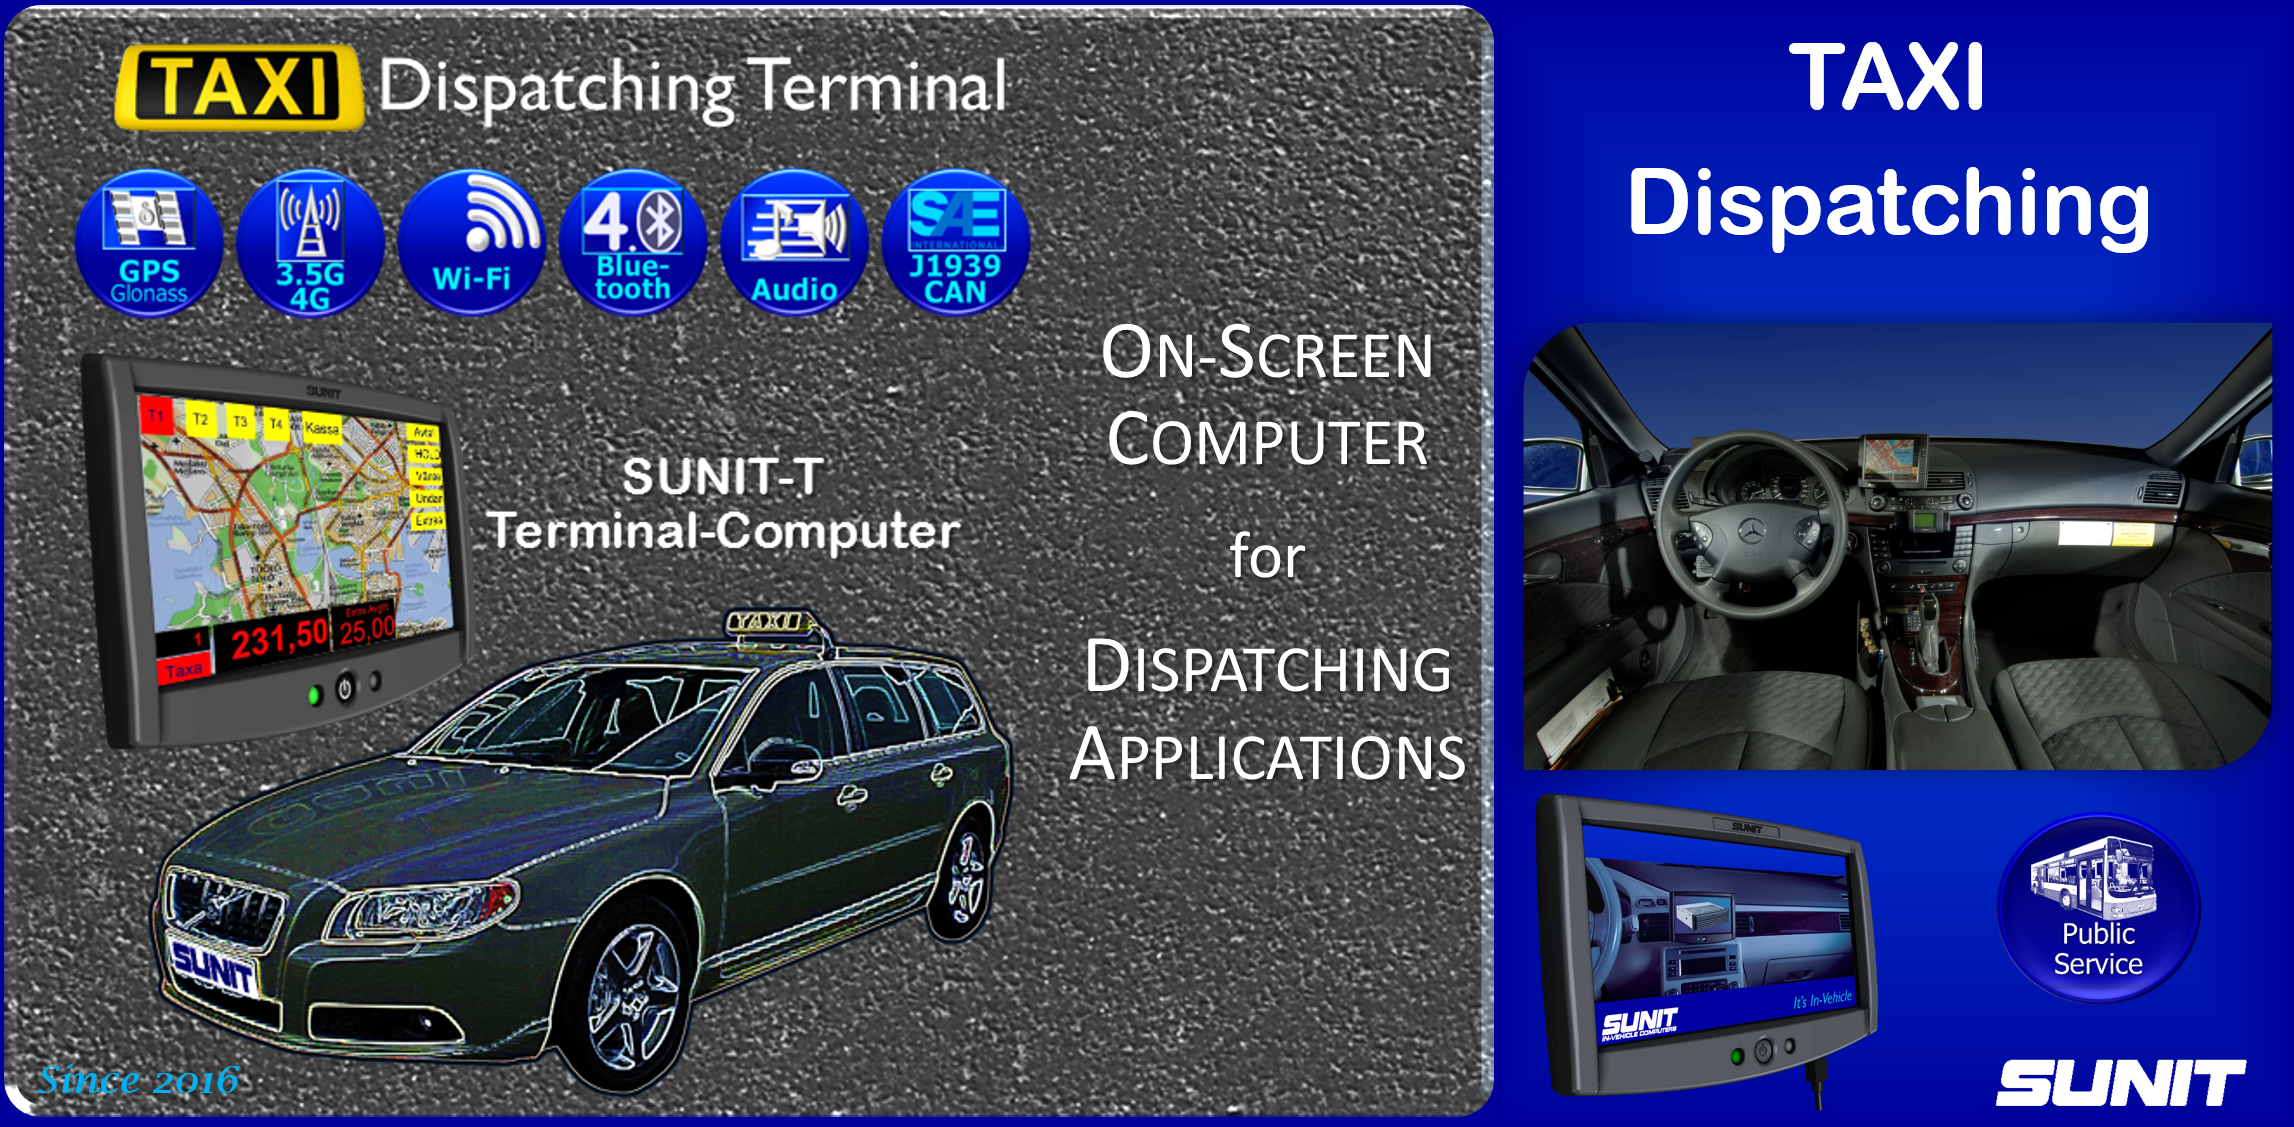 SUNIT Panel-PC for Taxi Dispatching